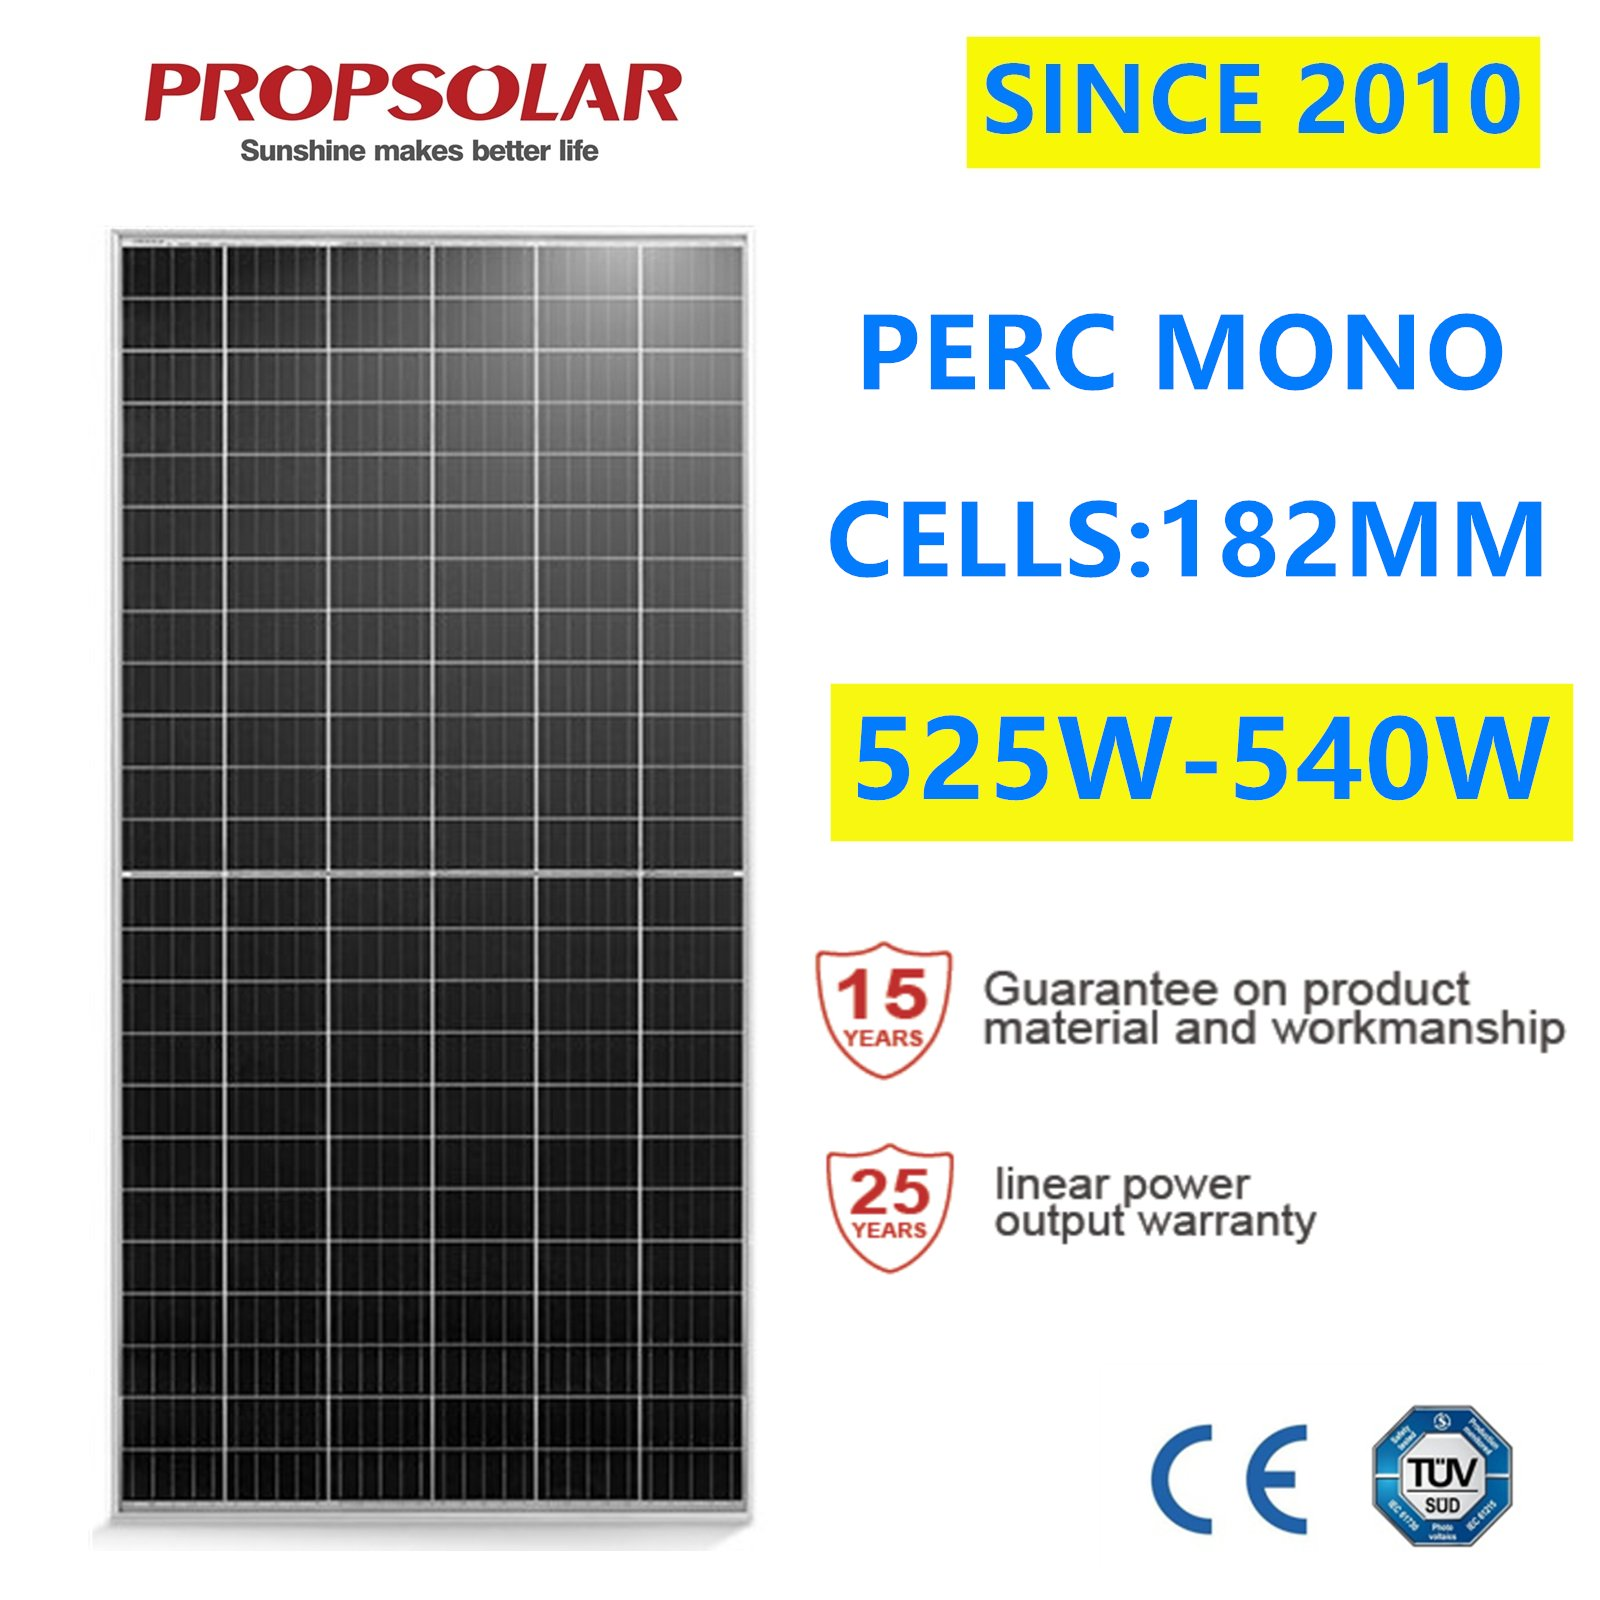 Shanghai Propsolar New Energy Co., Ltd.